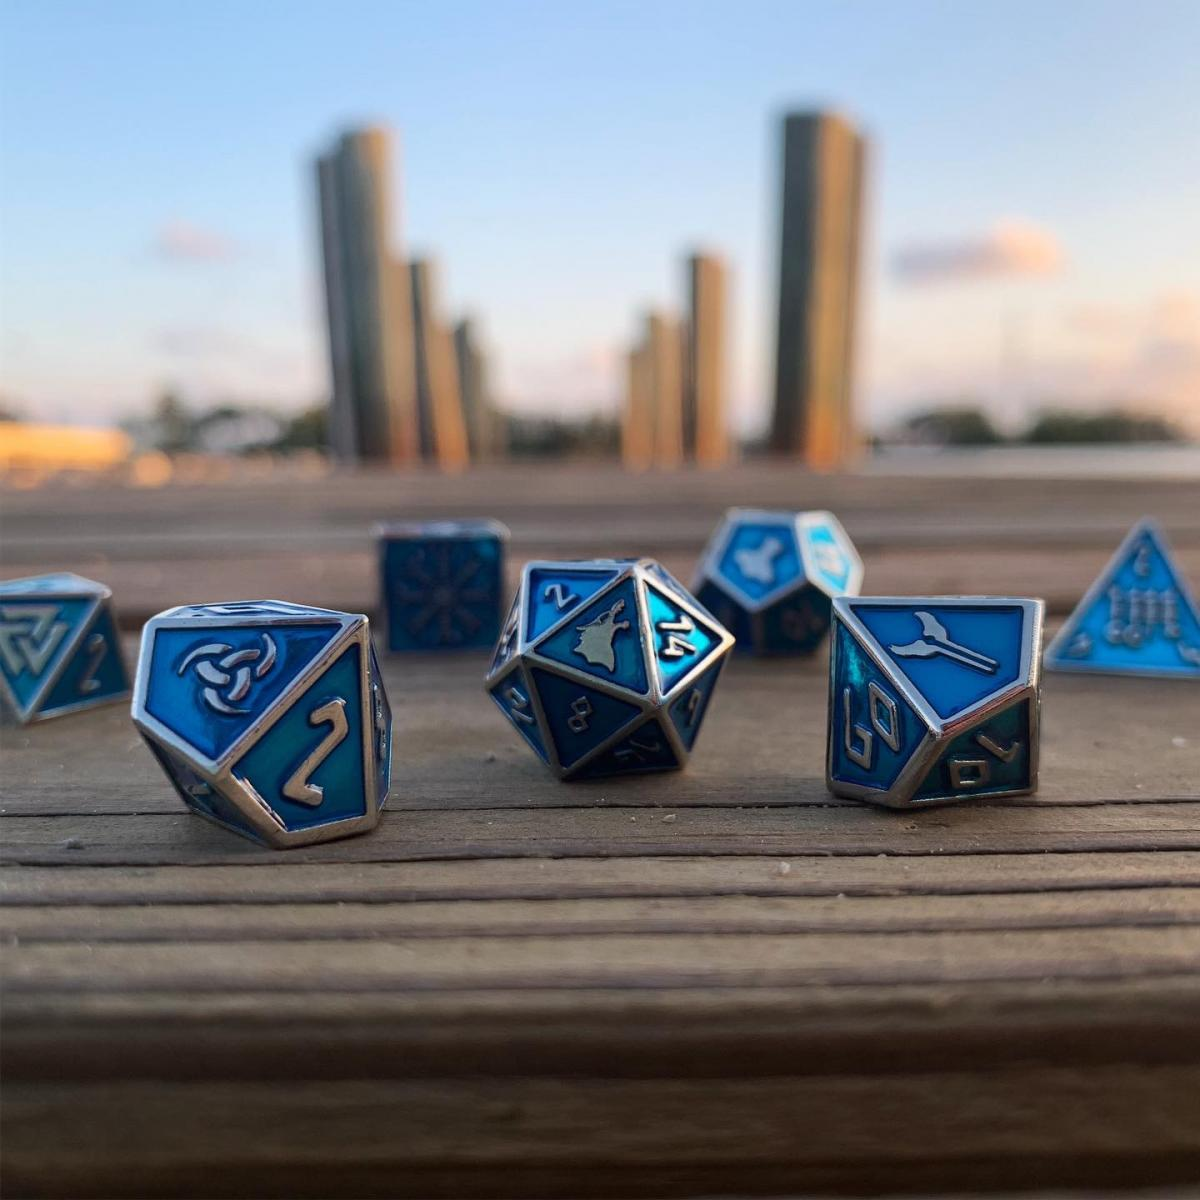 Norse Foundry Eventeny Our patreon is no different we are looking to provide special offerings and merchandise to our amazing community. norse foundry eventeny